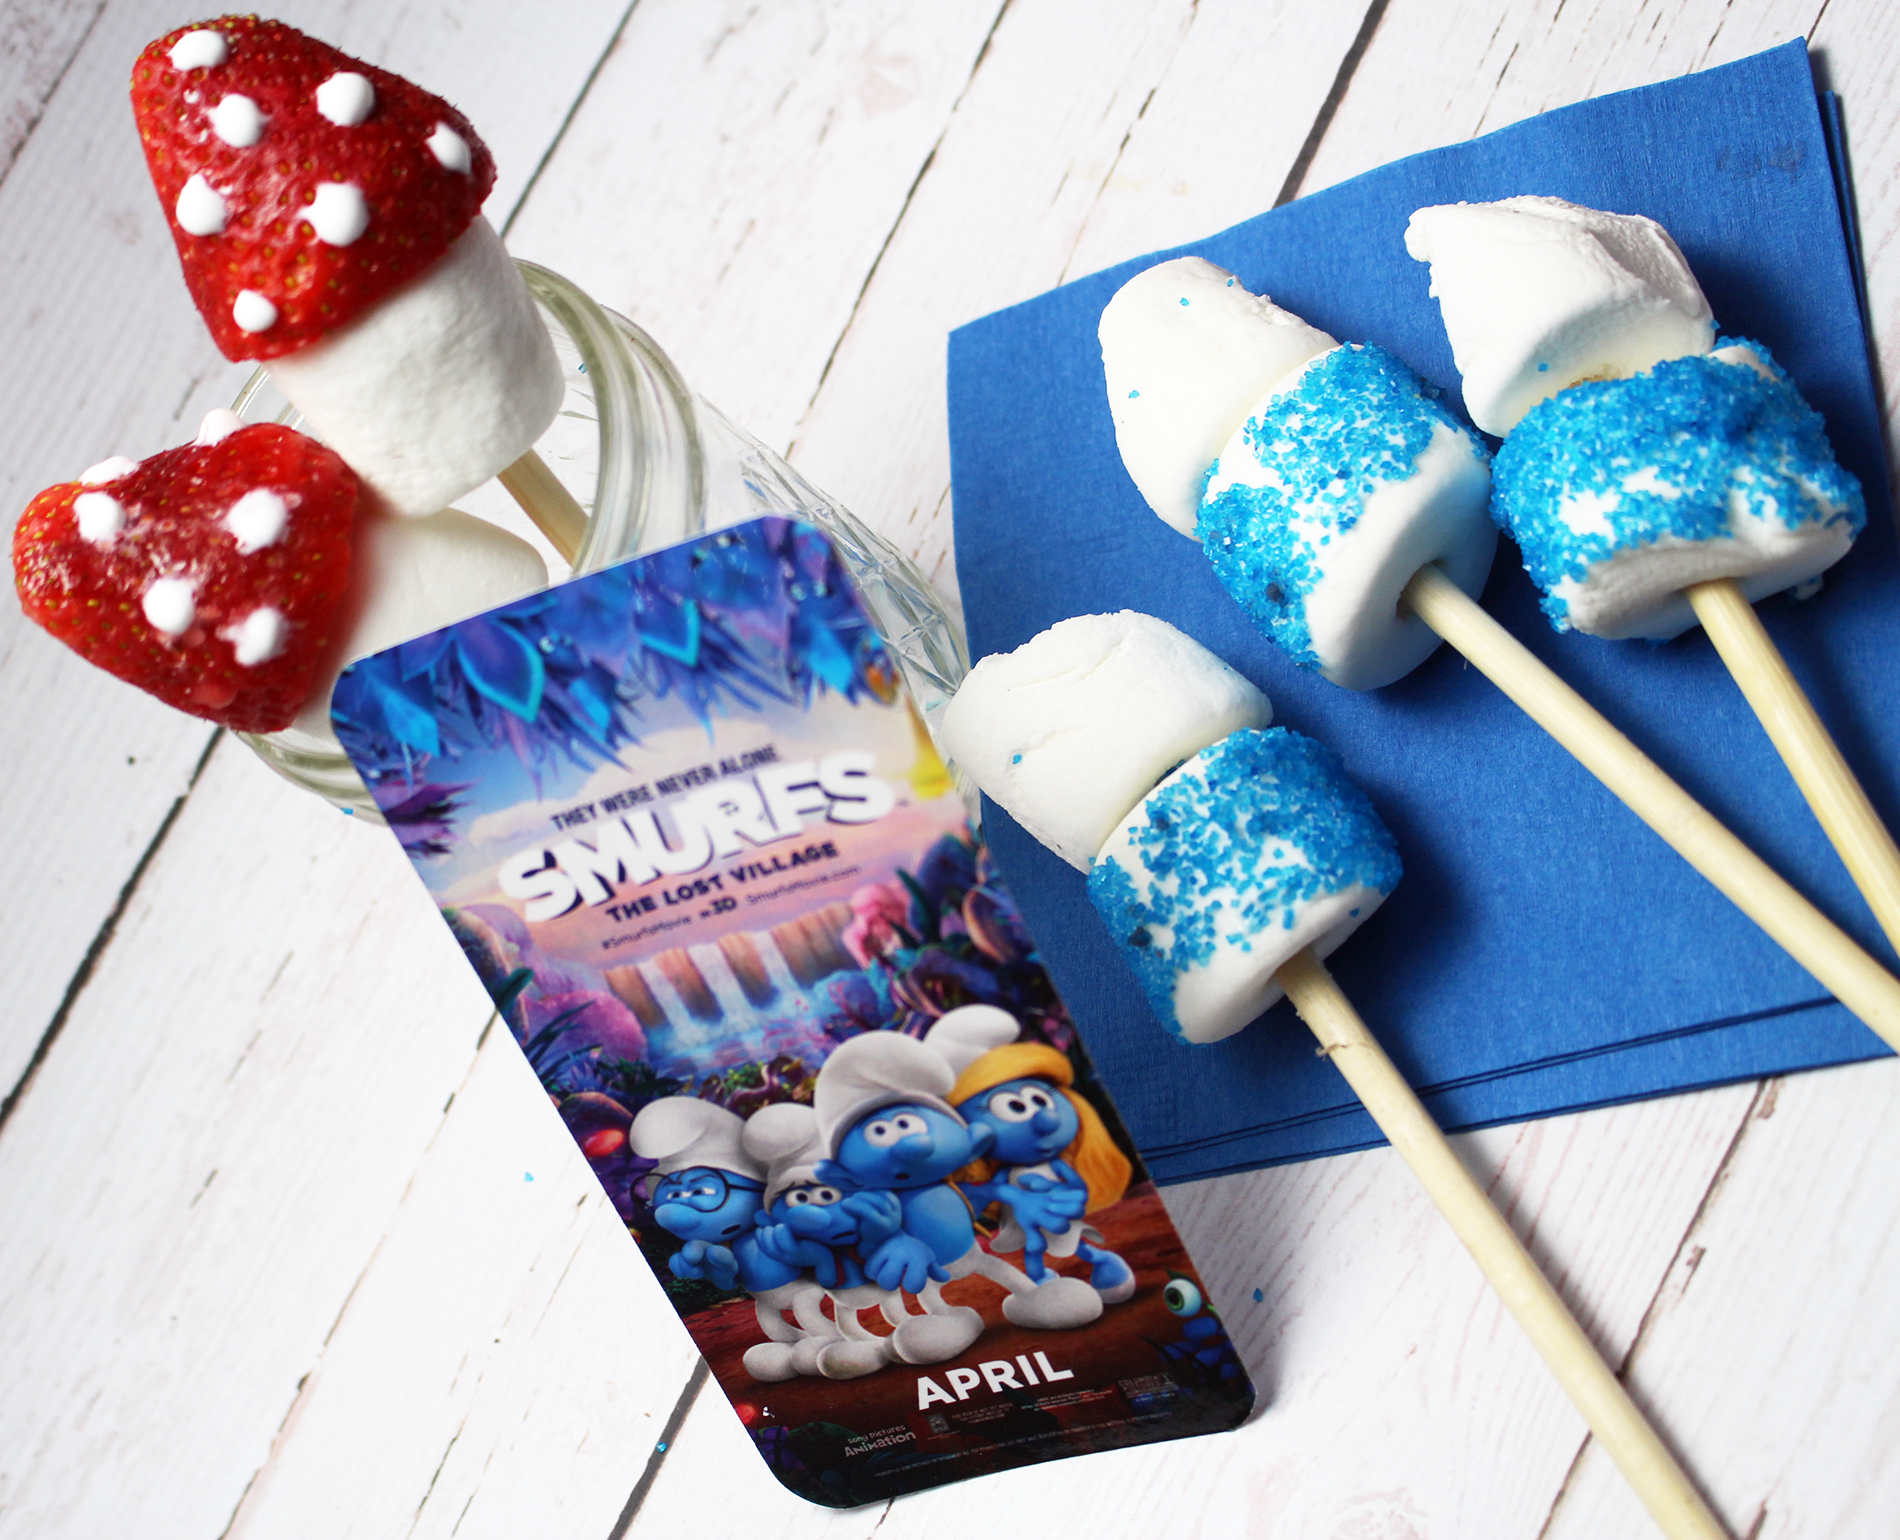 Smurfs: The Lost Village is in Theaters 4/7 + Smurfs Treats and GIVEAWAY! #SmurfsMovie